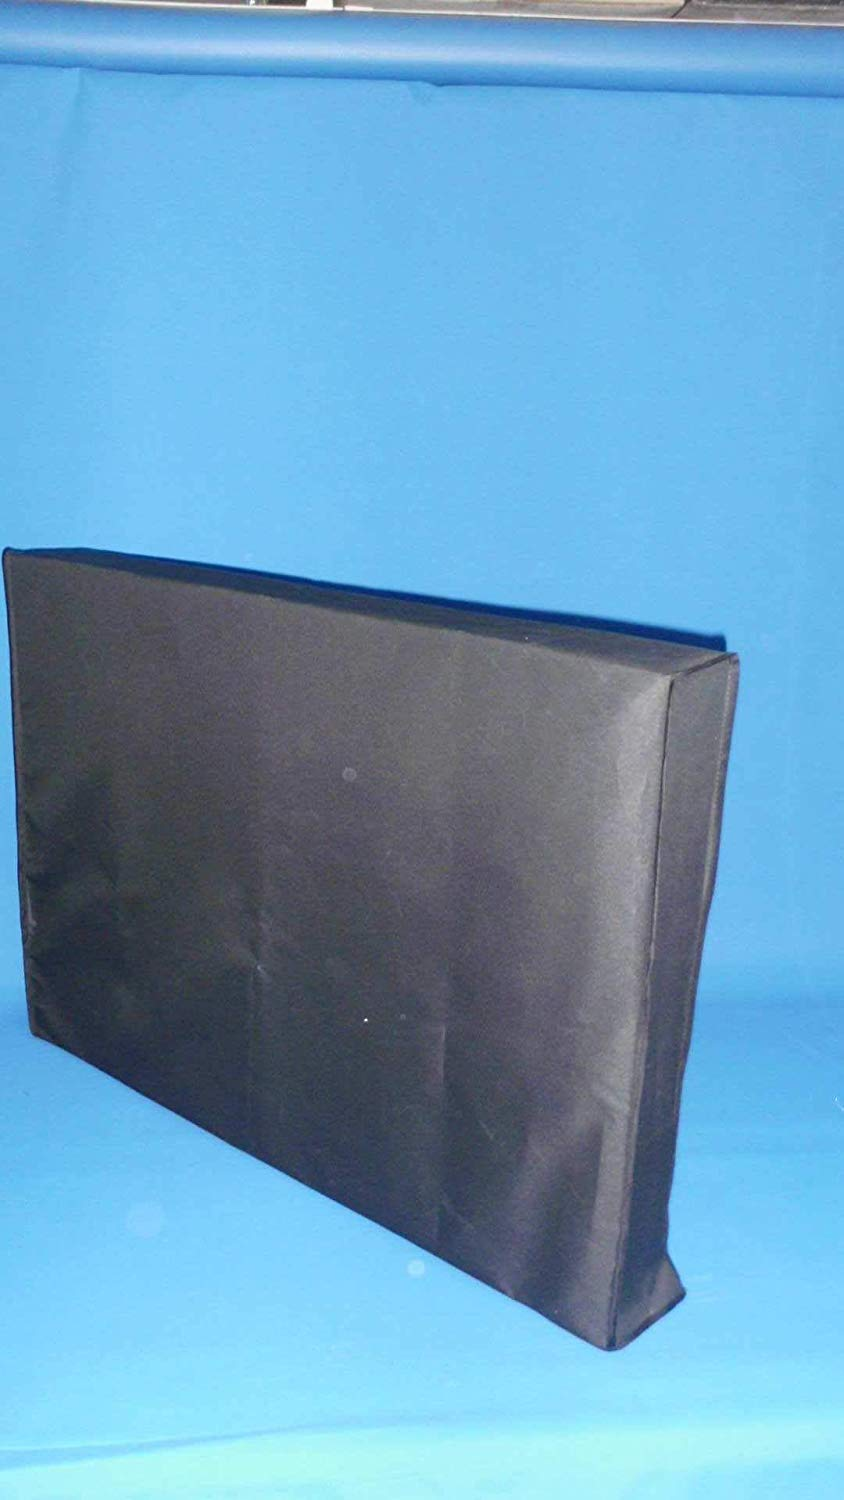 """Large Flat Screen Tv's 37"""" Marine Grade Black Nylon Dust Covers Ideal for Outdoor Locations. (Certified Refurbished)"""